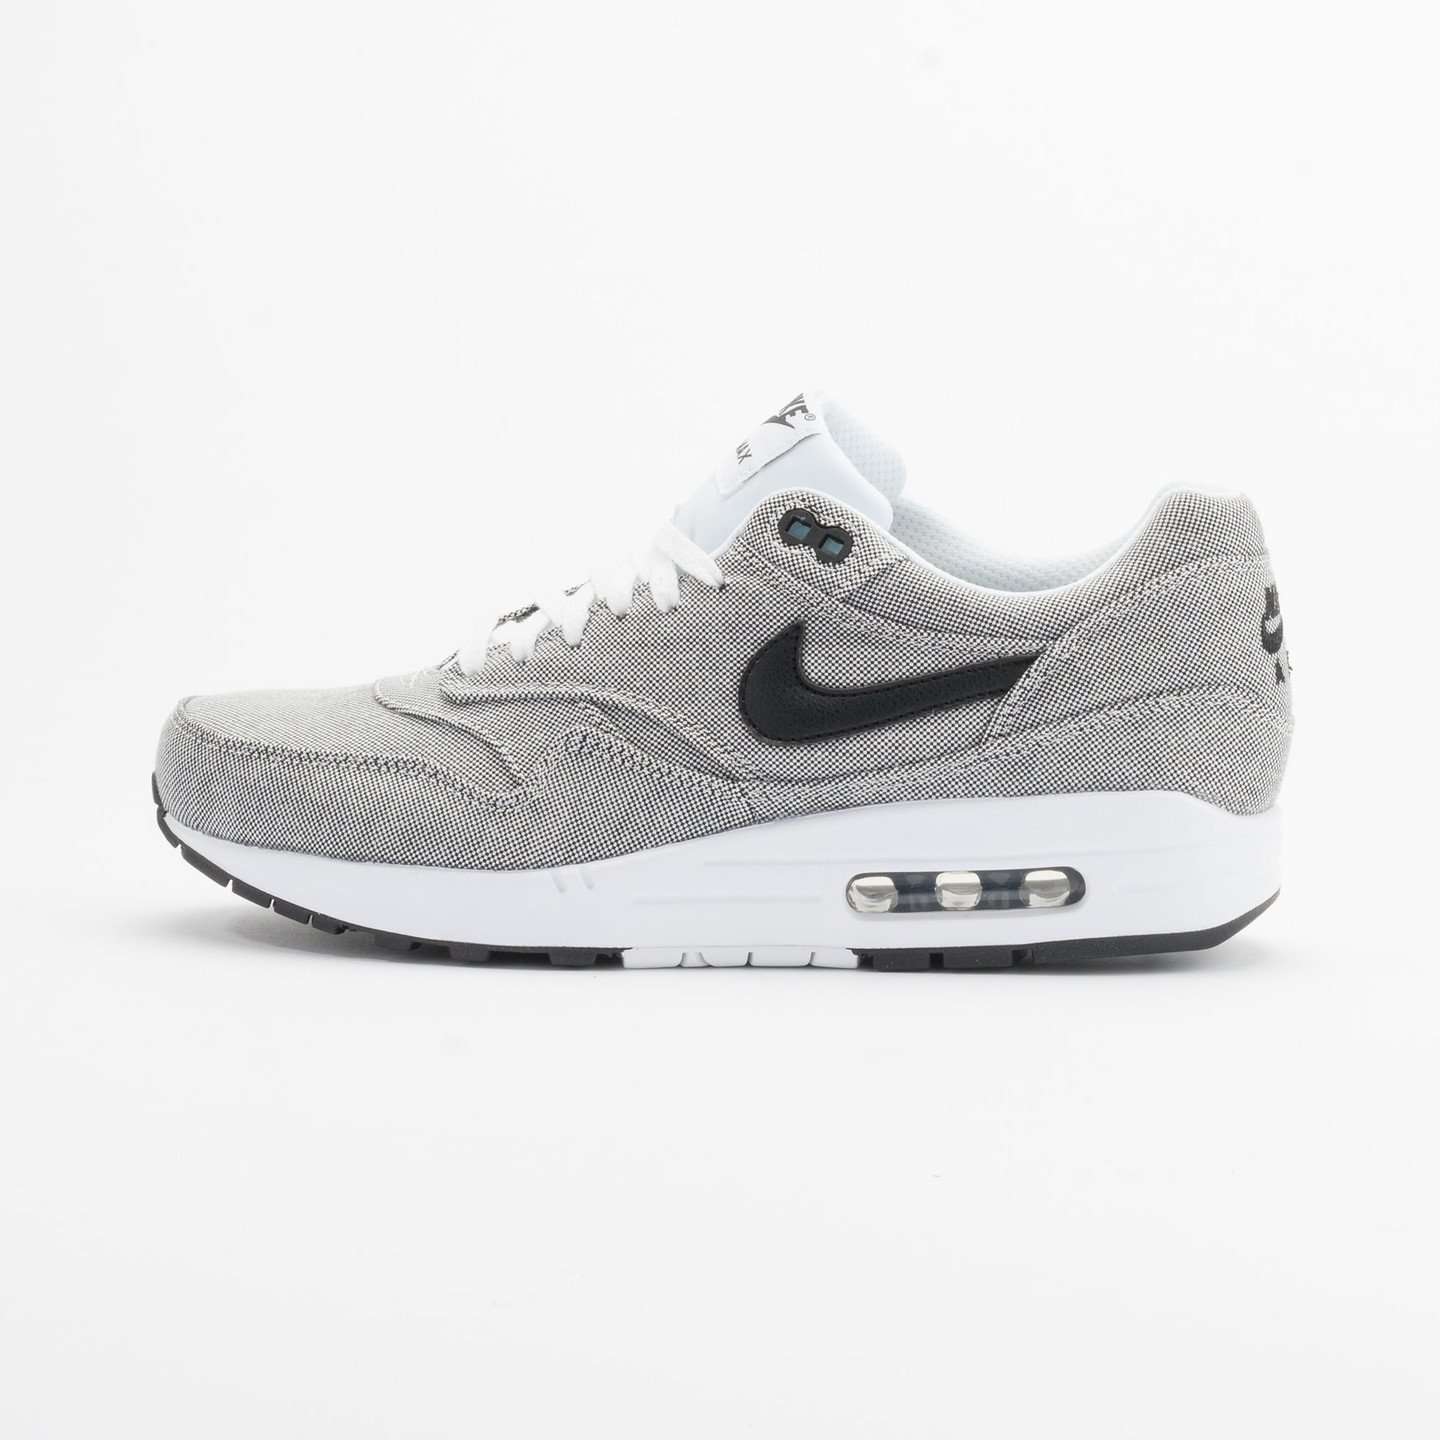 Nike Air Max 1 Prm Picknick Pack Black/White 512033-103-40